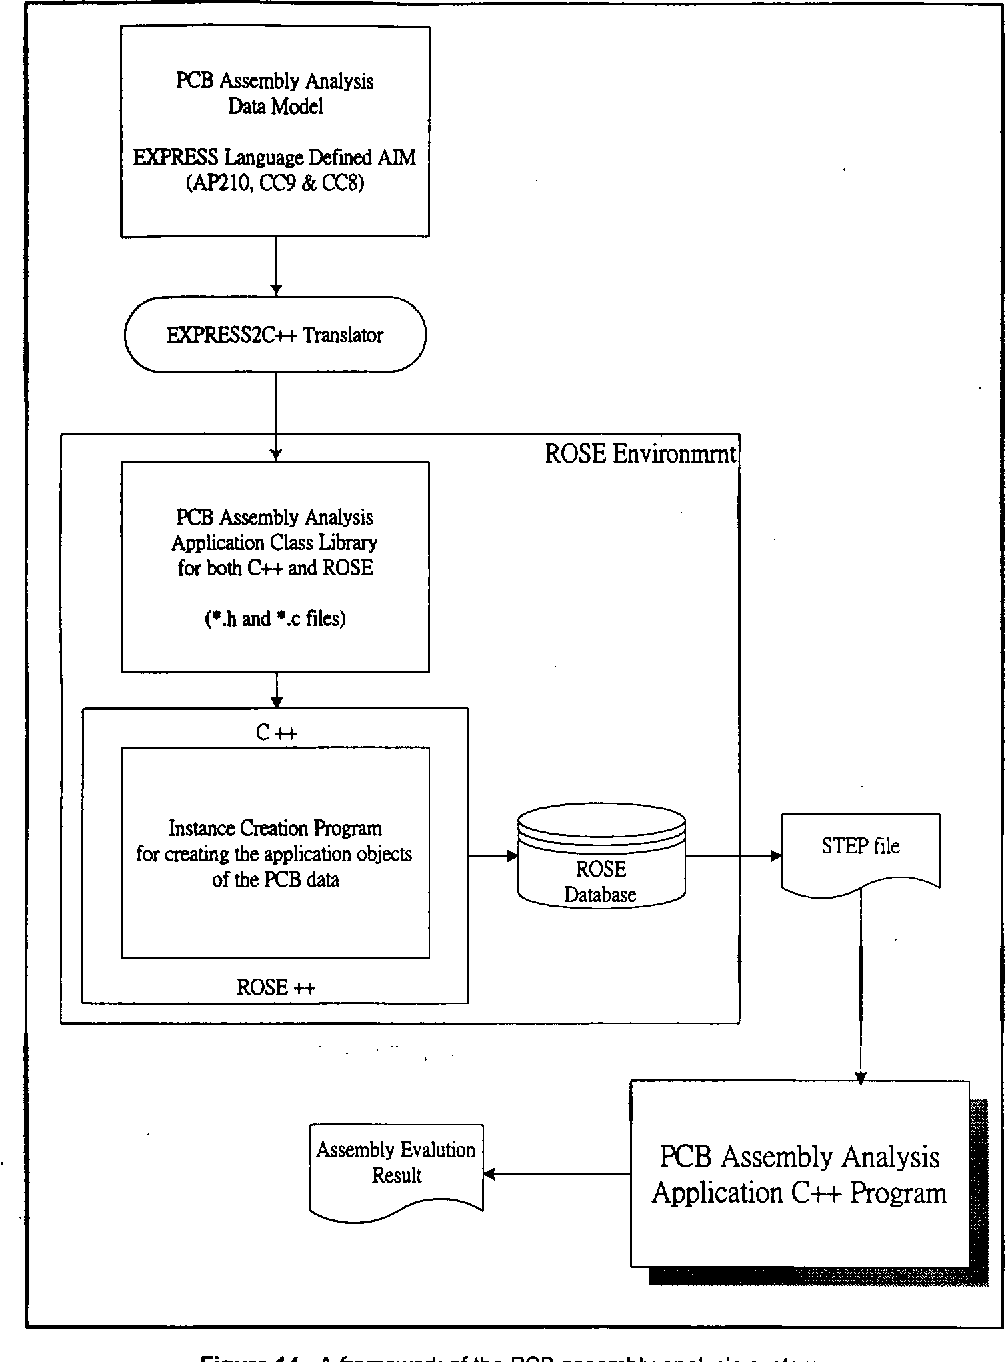 Figure 14 from ISO 10303-Based PCB Assembly Data Model for Assembly